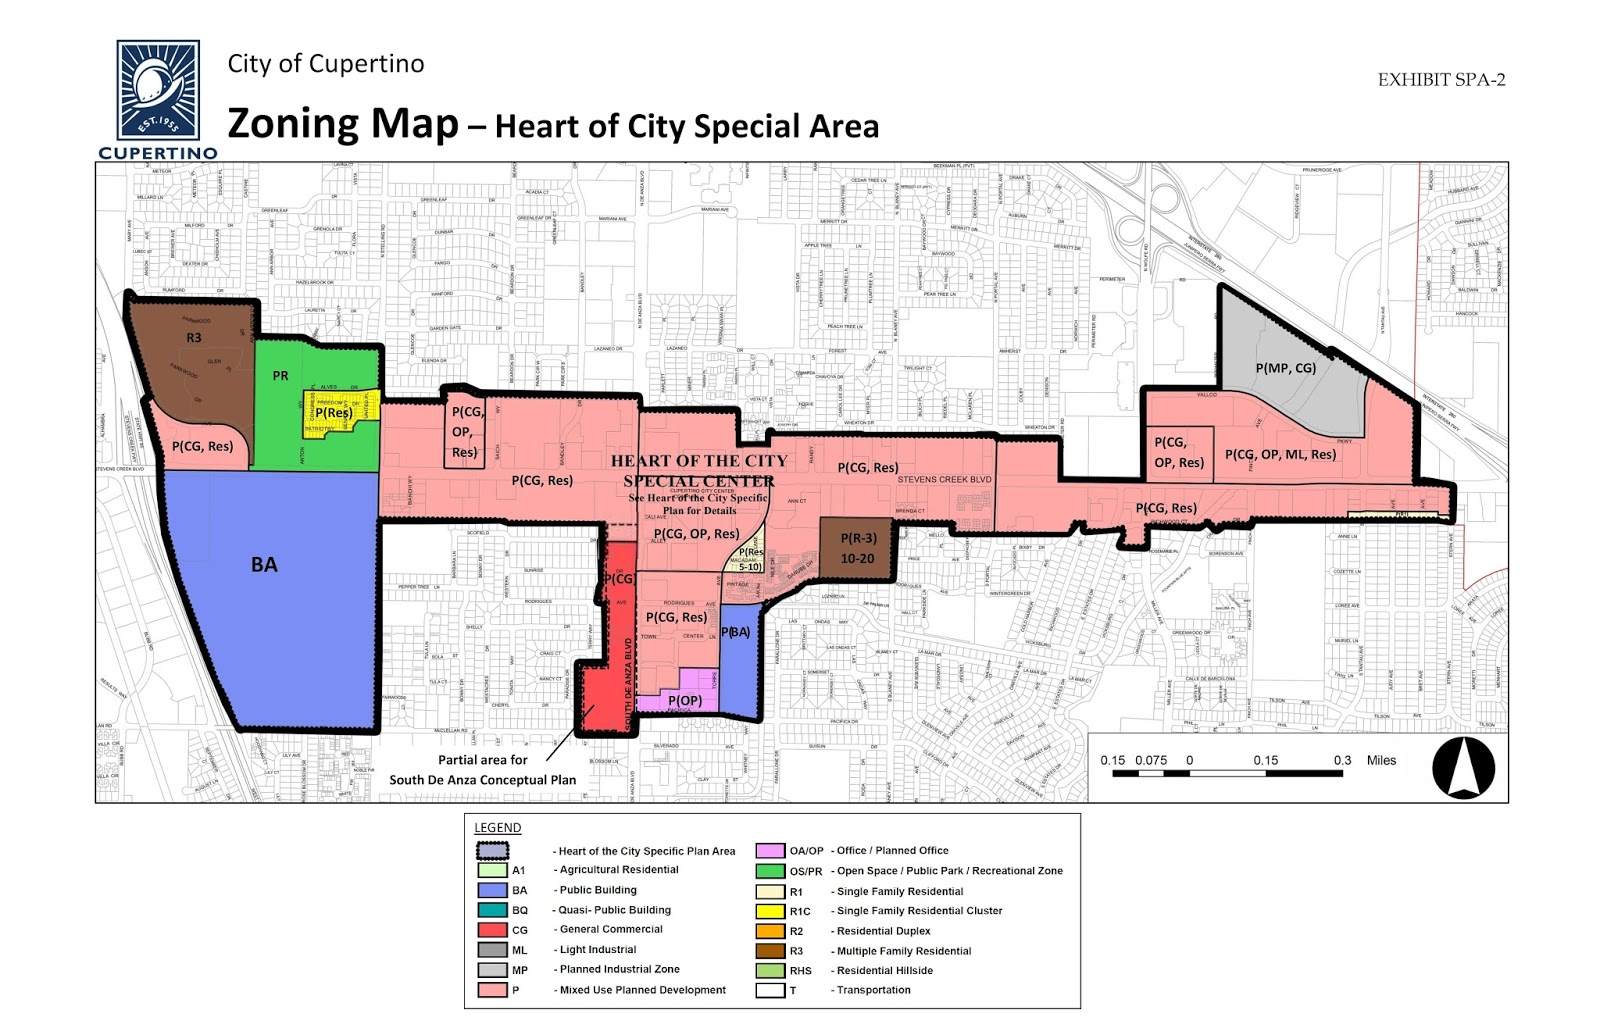 Mixed Use Zone = Almost Every Commercial/Office Space in